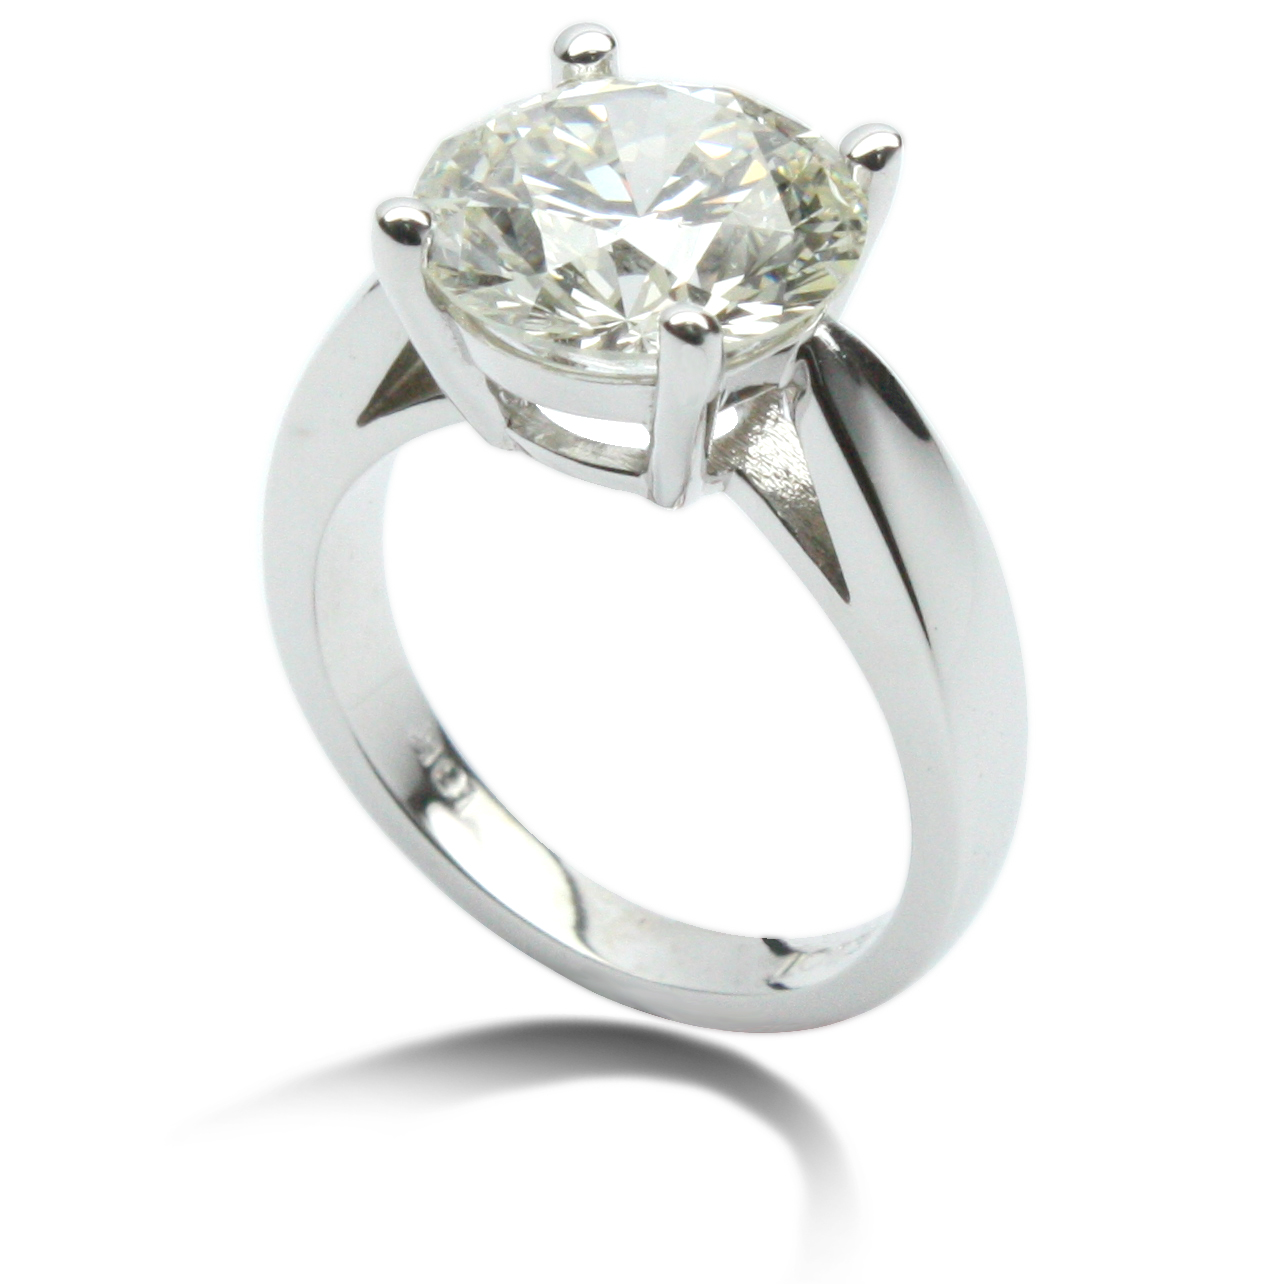 Dazzling 4 Carat Diamond Ring!